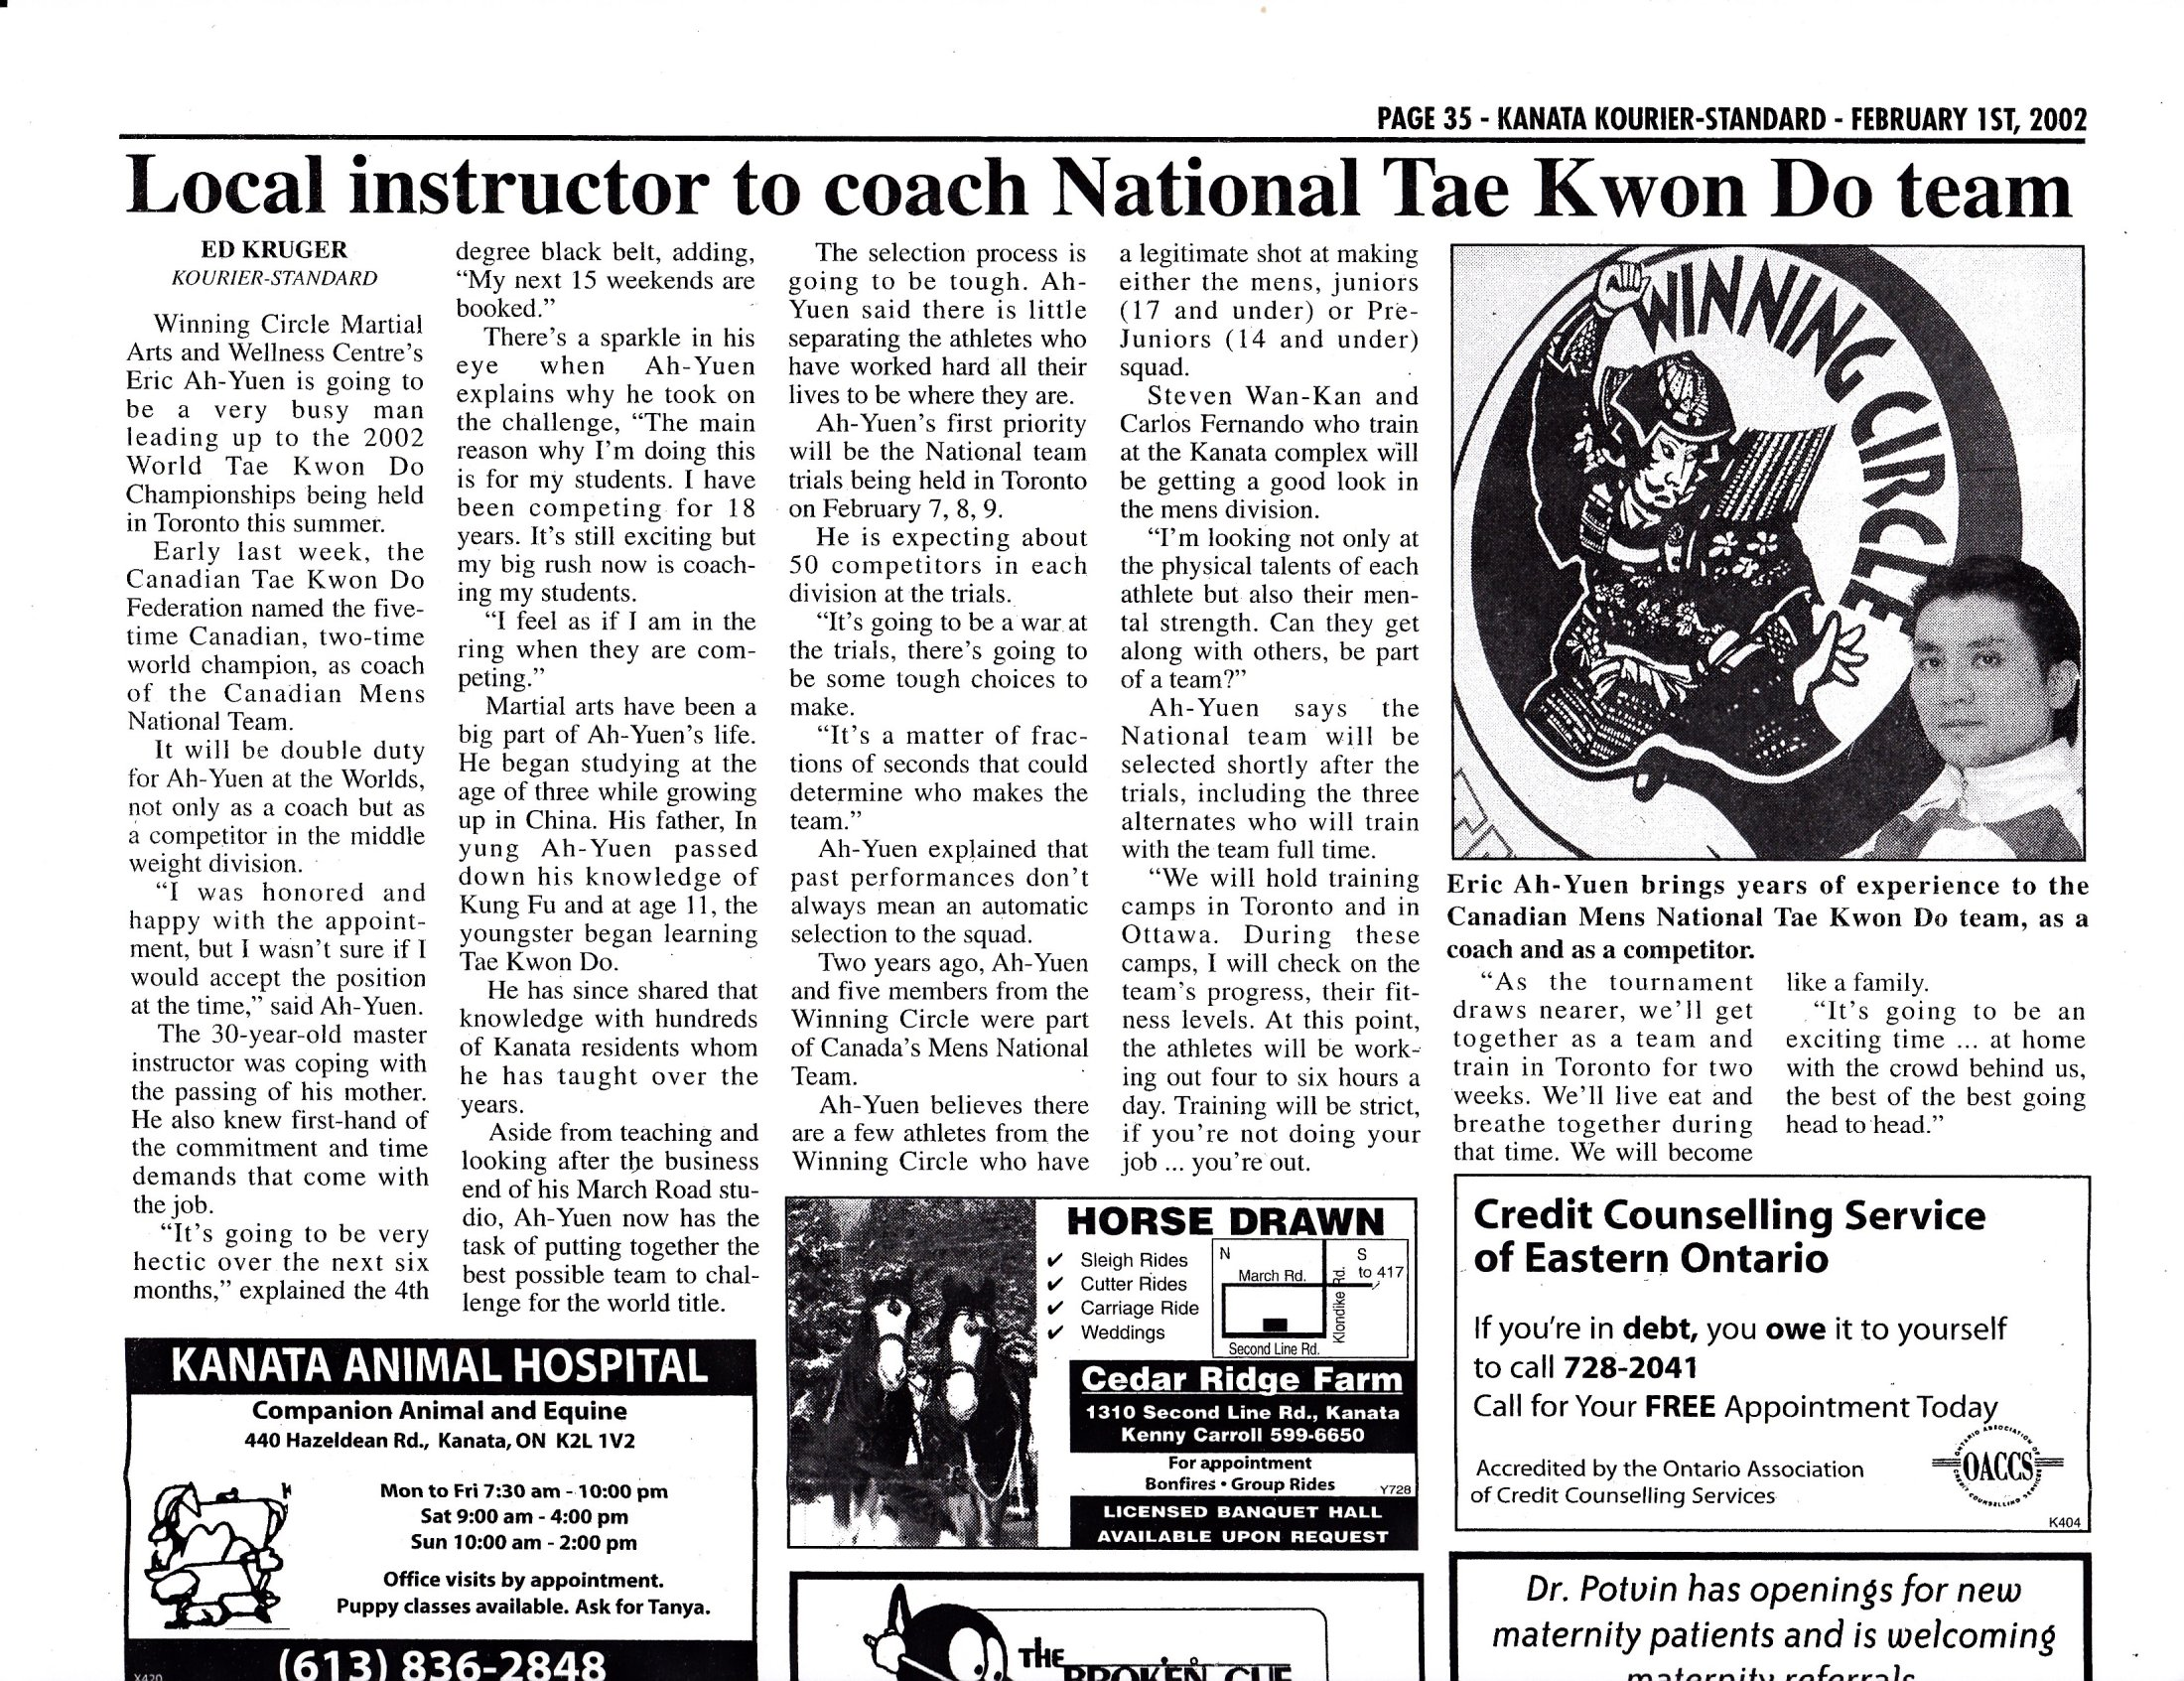 Kourier-Standard 2002 \'\'Local Instructor to coach National Tae Kwon Do Team\'\'